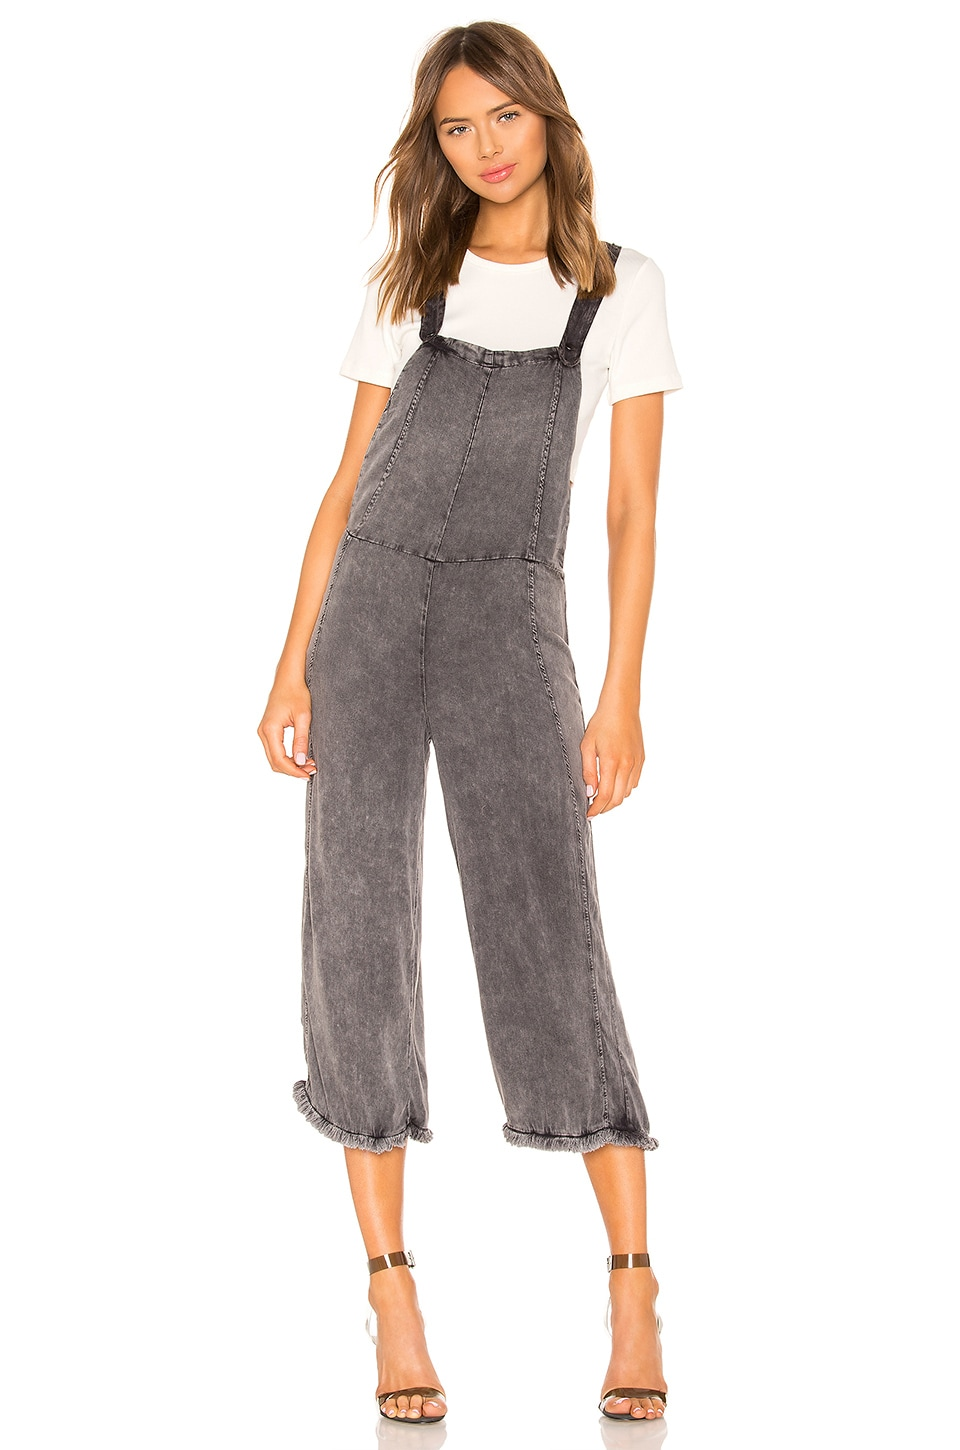 Chaser Cross Back Cropped Culotte Overalls with Frayed Edge in Black Cloud Wash